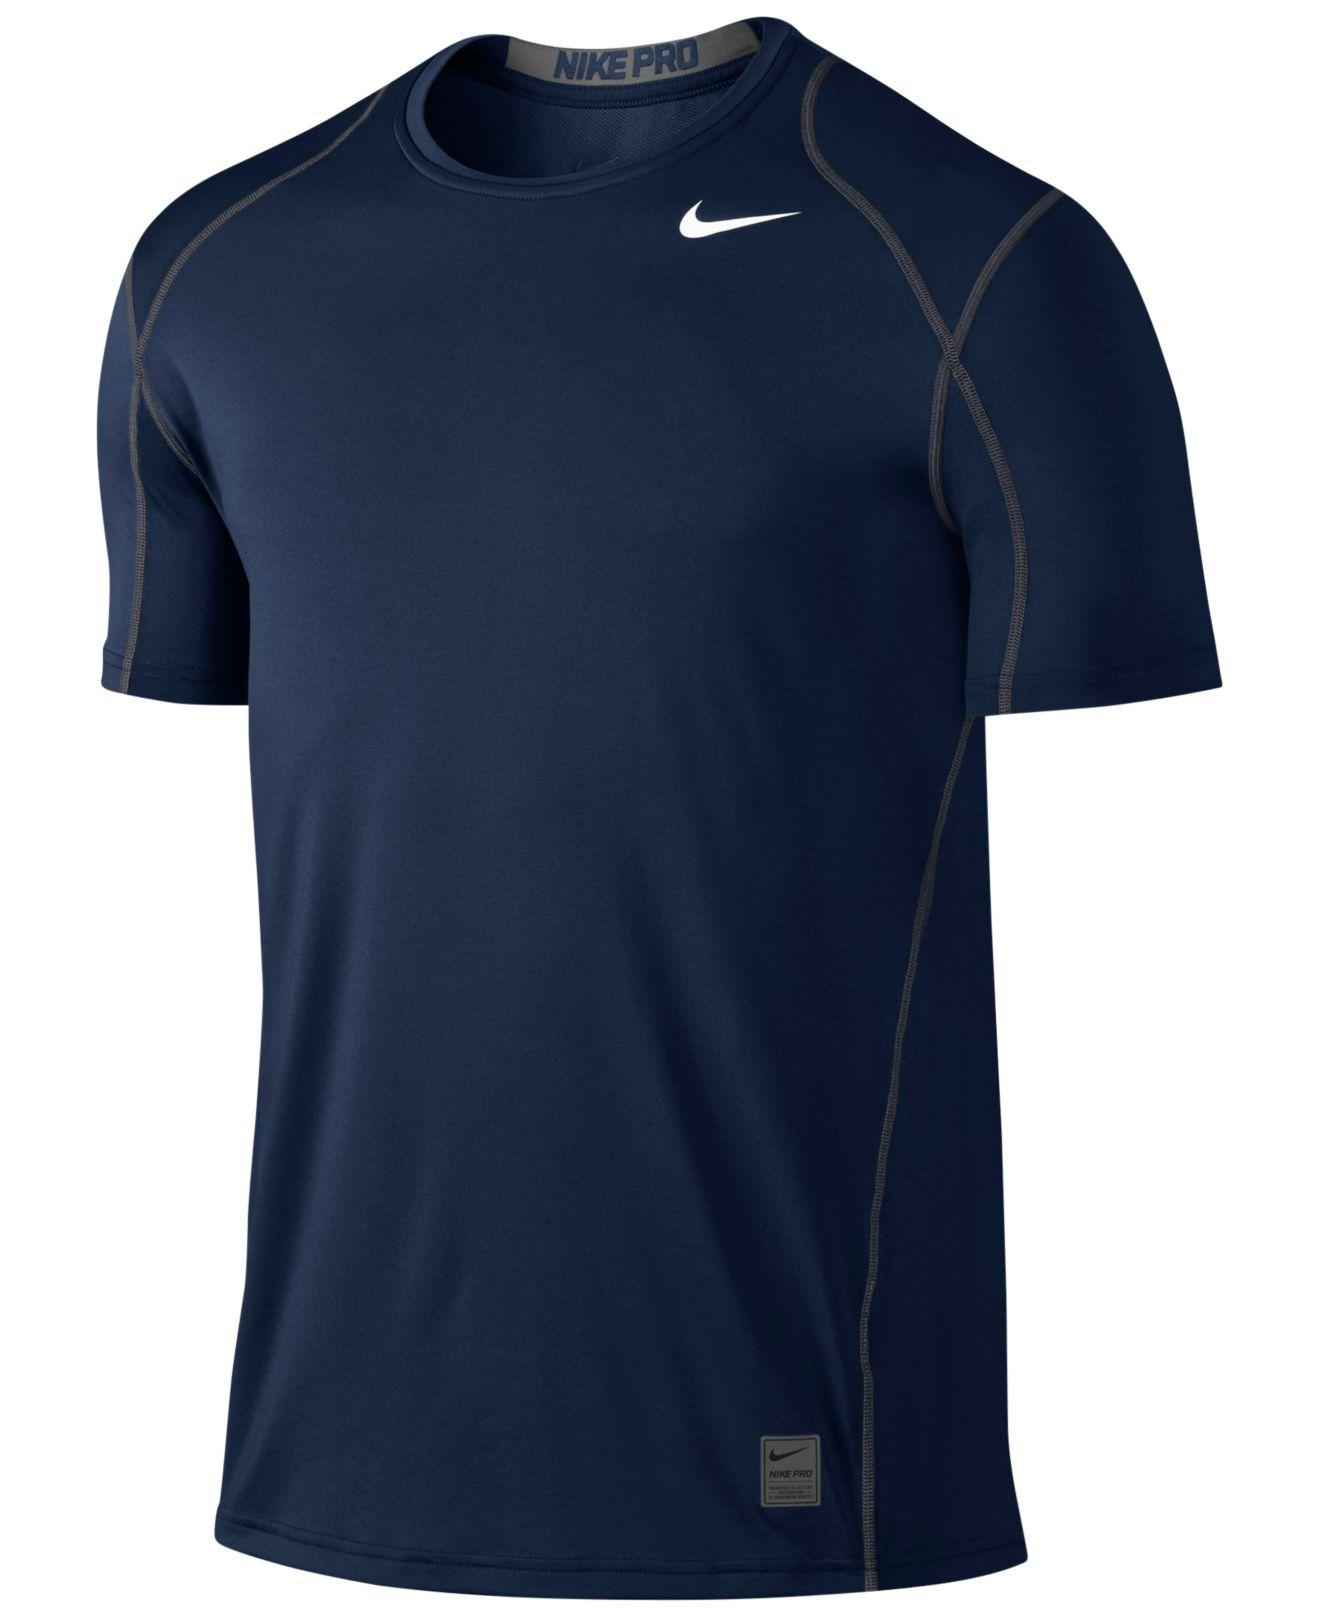 Nike Pro Cool Fitted Dri fit Shirt In Blue For Men Lyst